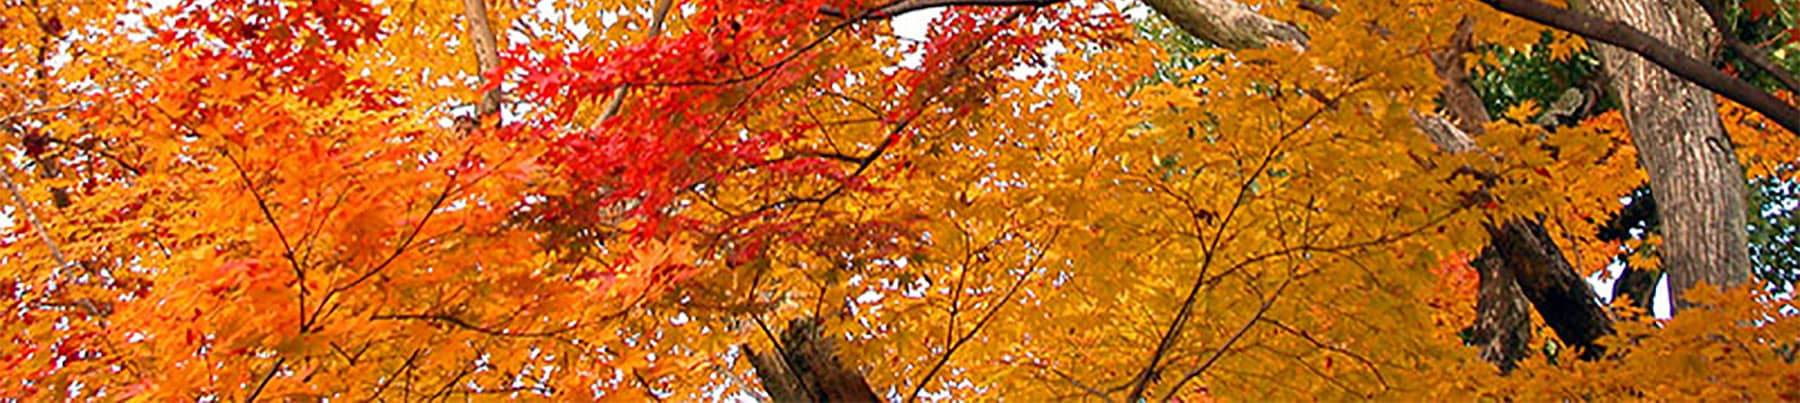 An Autumn Day Of Trees And Leaves Picture